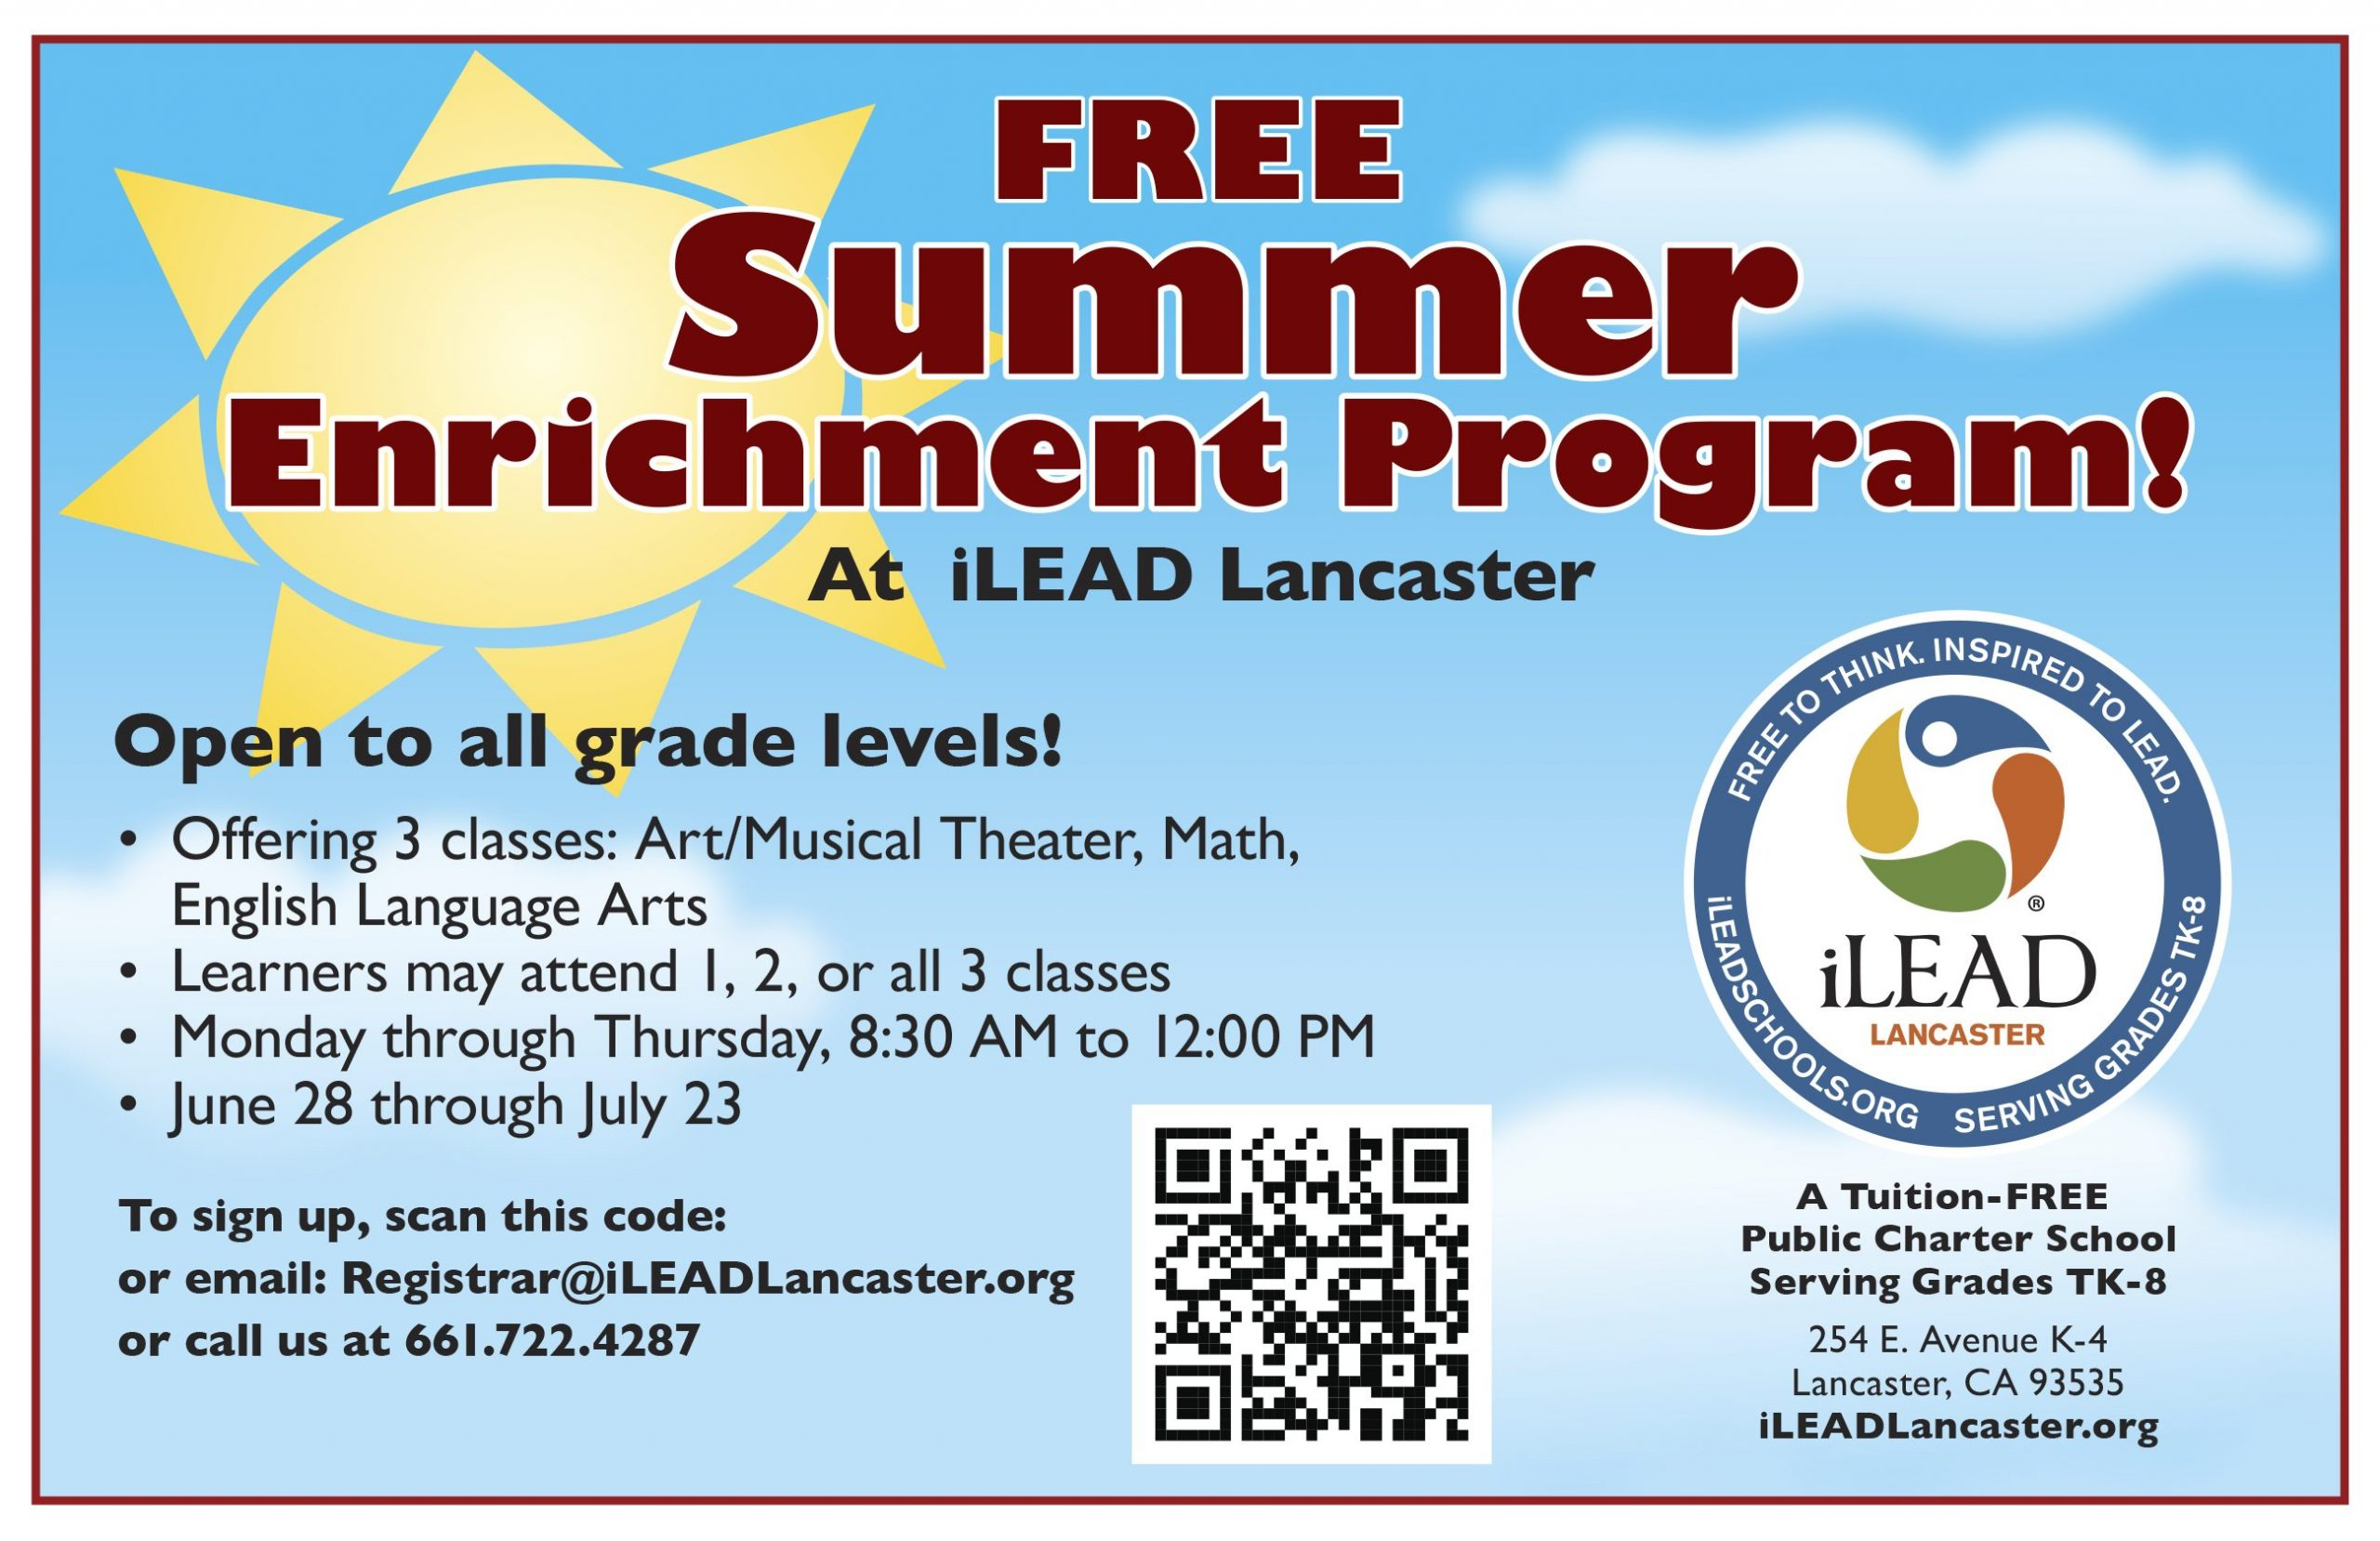 iLEAD Lancaster Free Summer Enrichment Programs